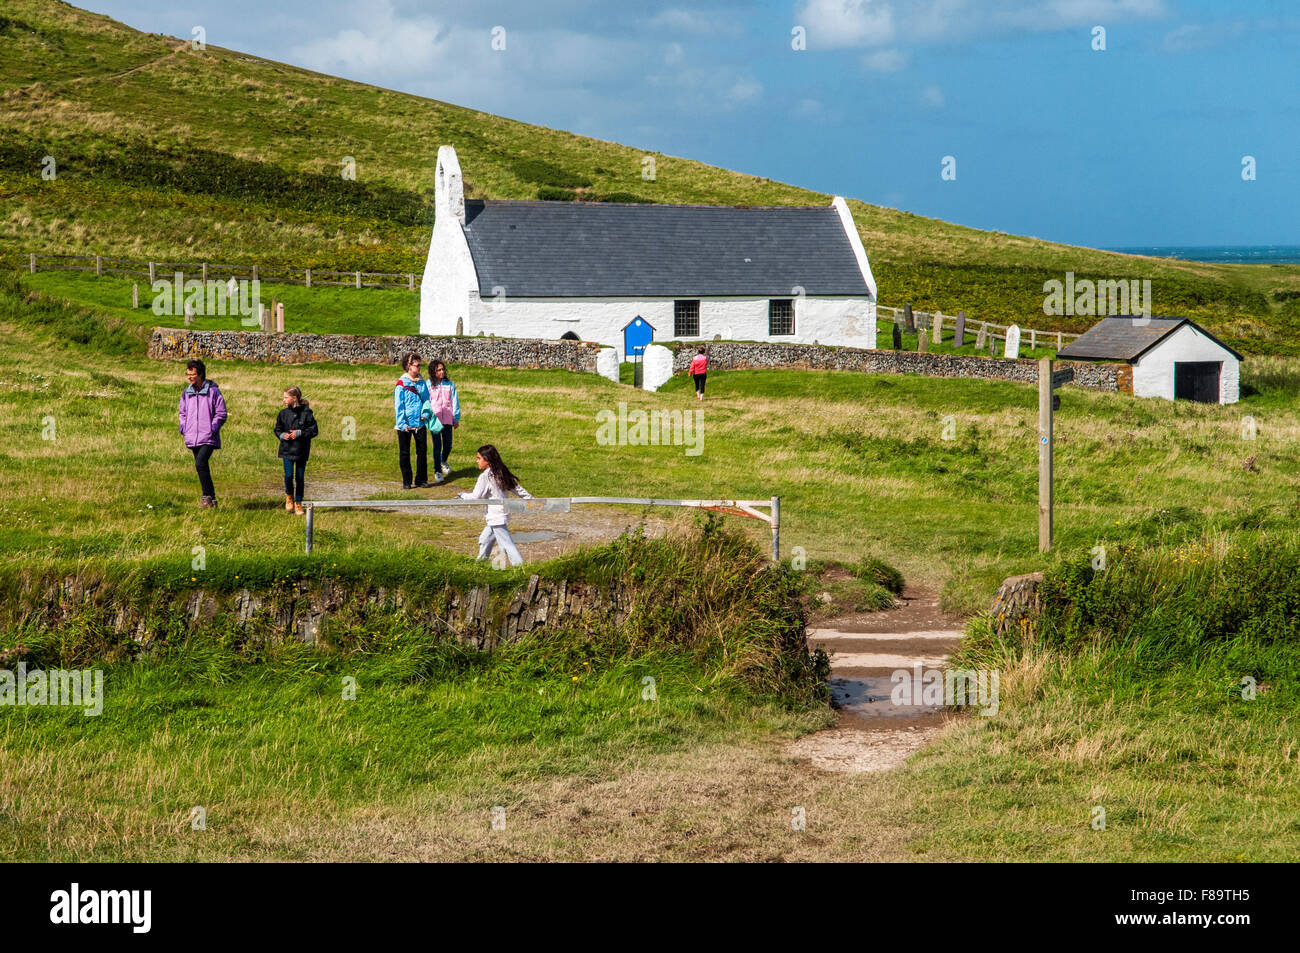 Mwnt Church on the Ceredigion, or Cardiganshire, Coast in West Wales, with visitors - Stock Image